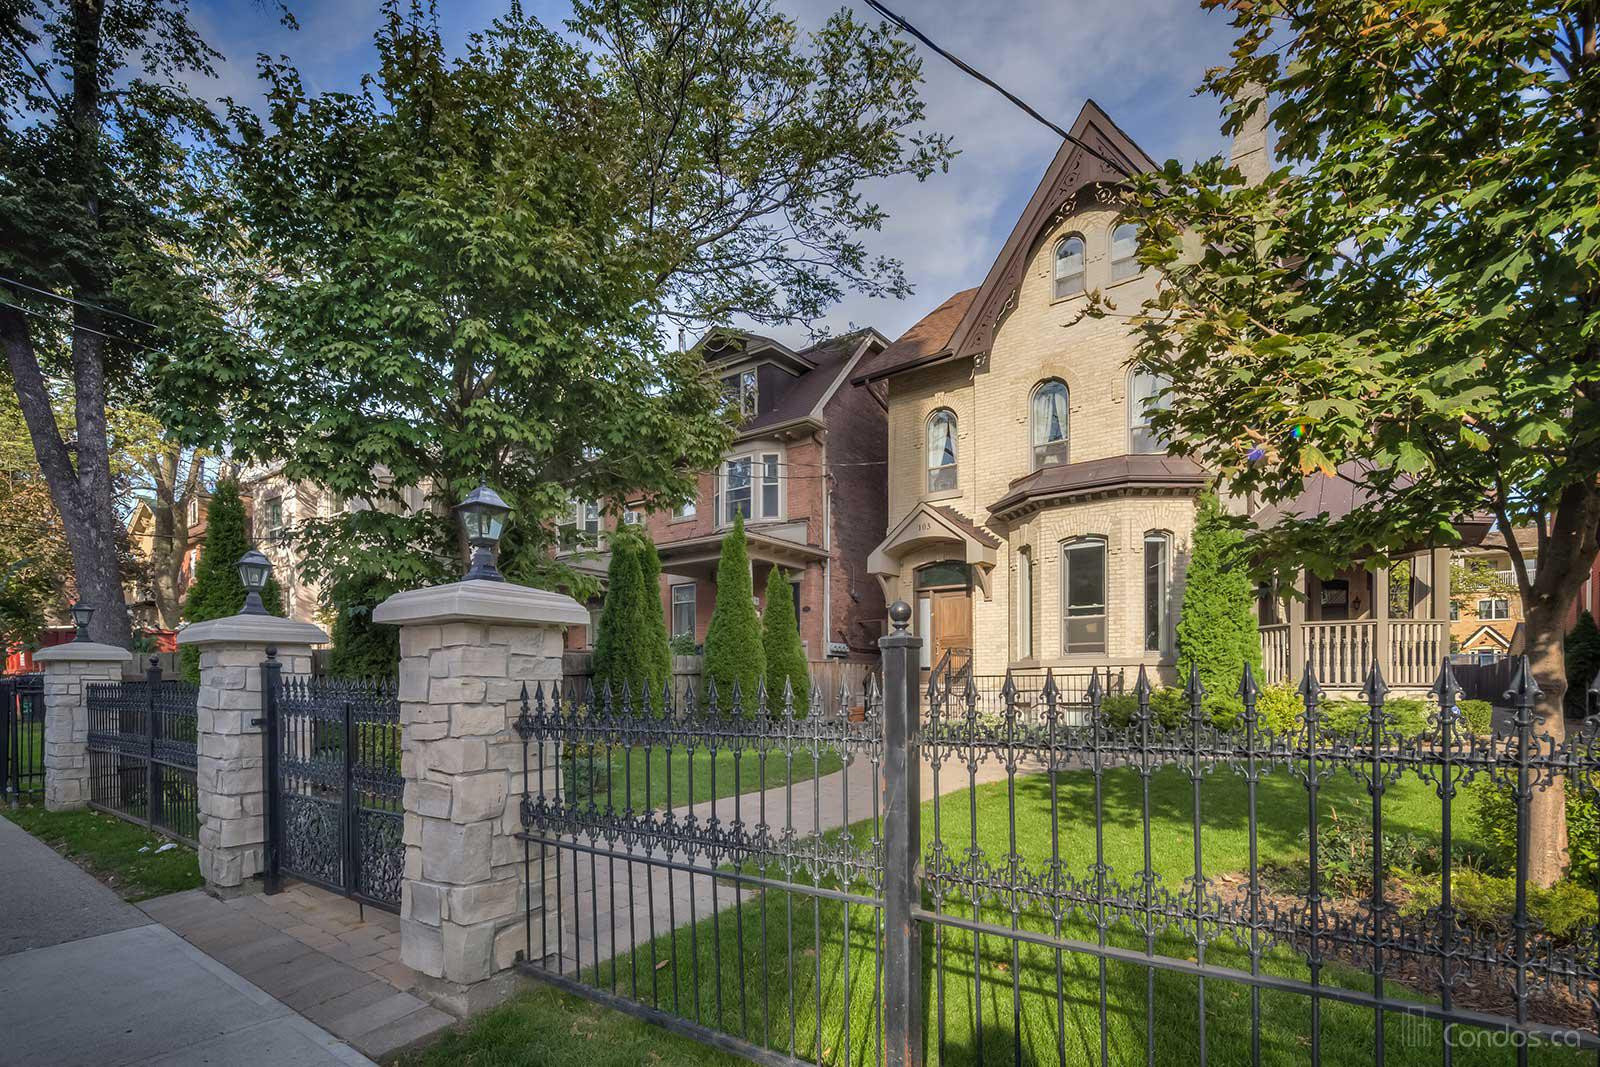 The Four Courts Cabbagetown at 103 Pembroke St, Toronto 0